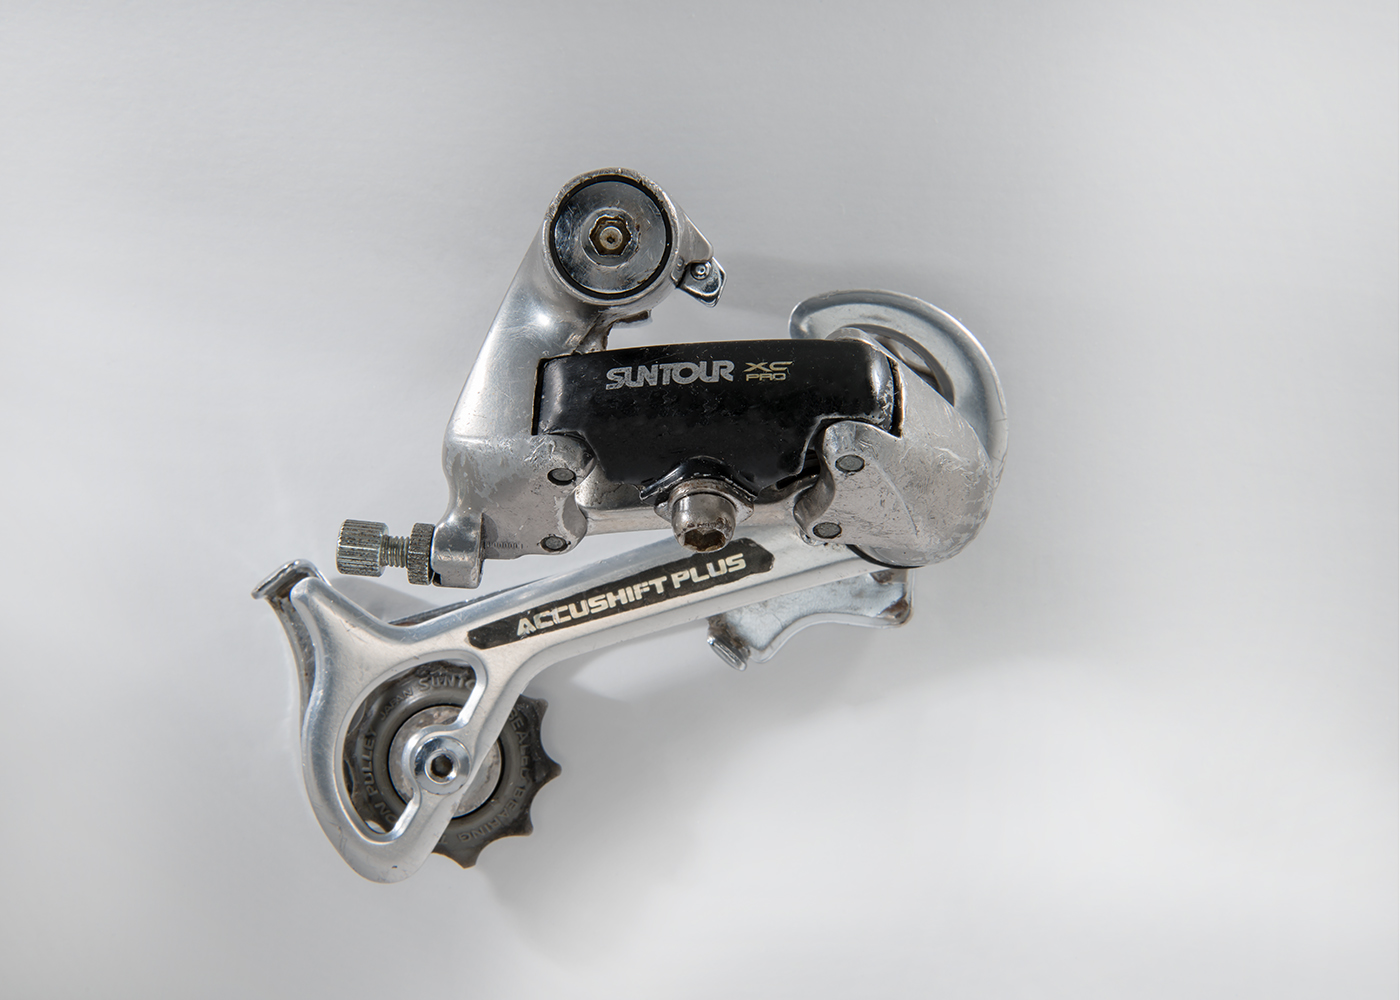 Suntour XC Pro  It was introduced in 1990 as a rival to Shimano XT. This is a mid-cage version and it was one of the premier Mountain Bike derailleurs of its era.